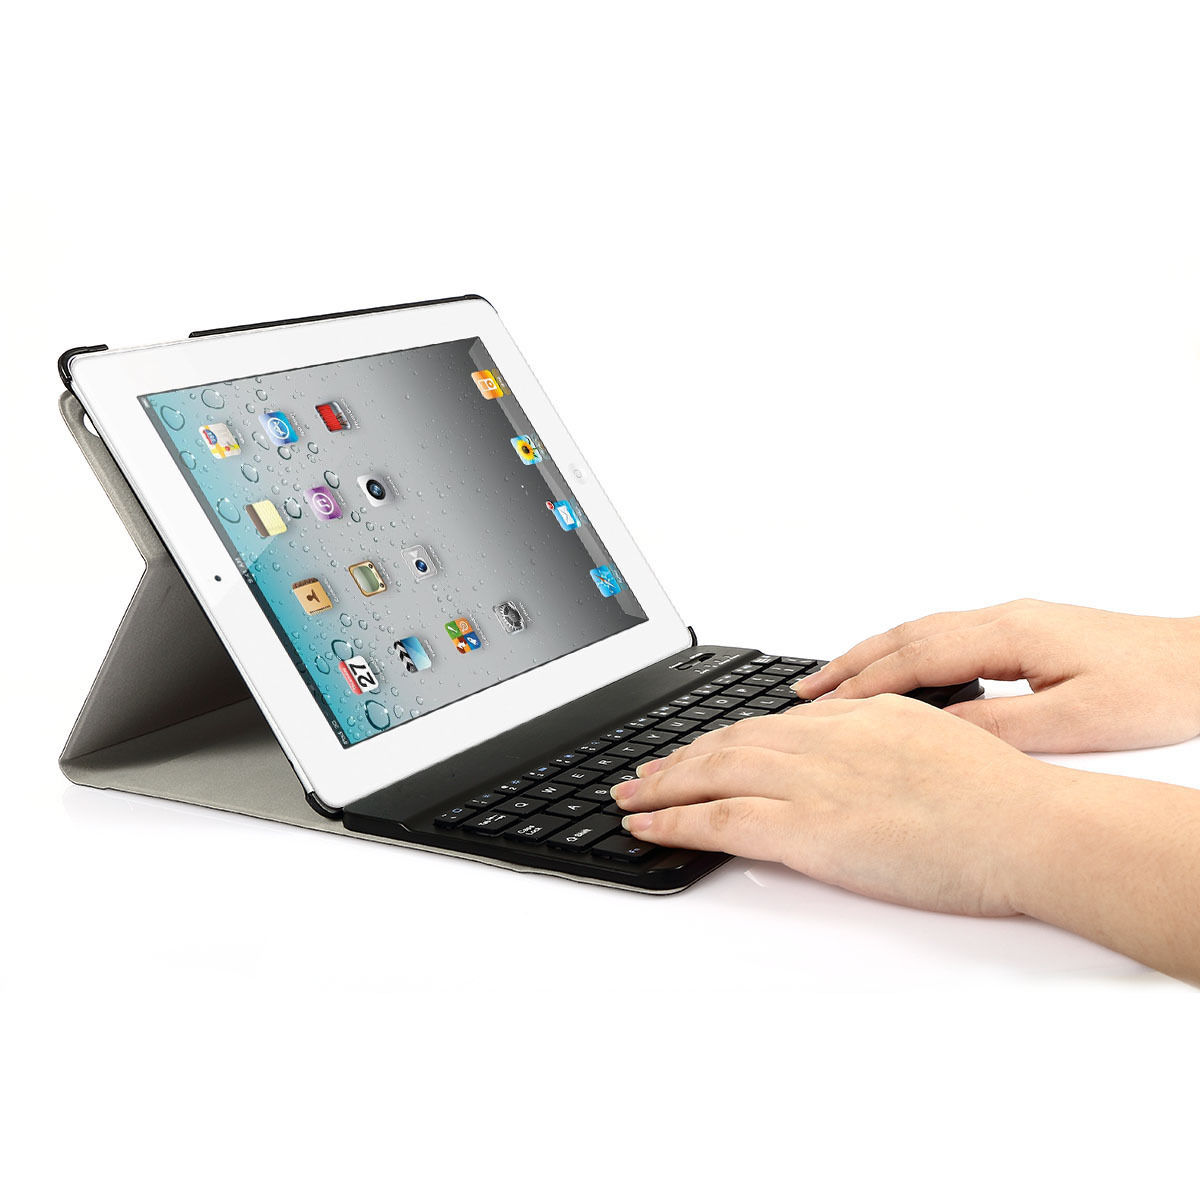 made wireless bluetooth keyboard for ipad 4 Parliament debates plan